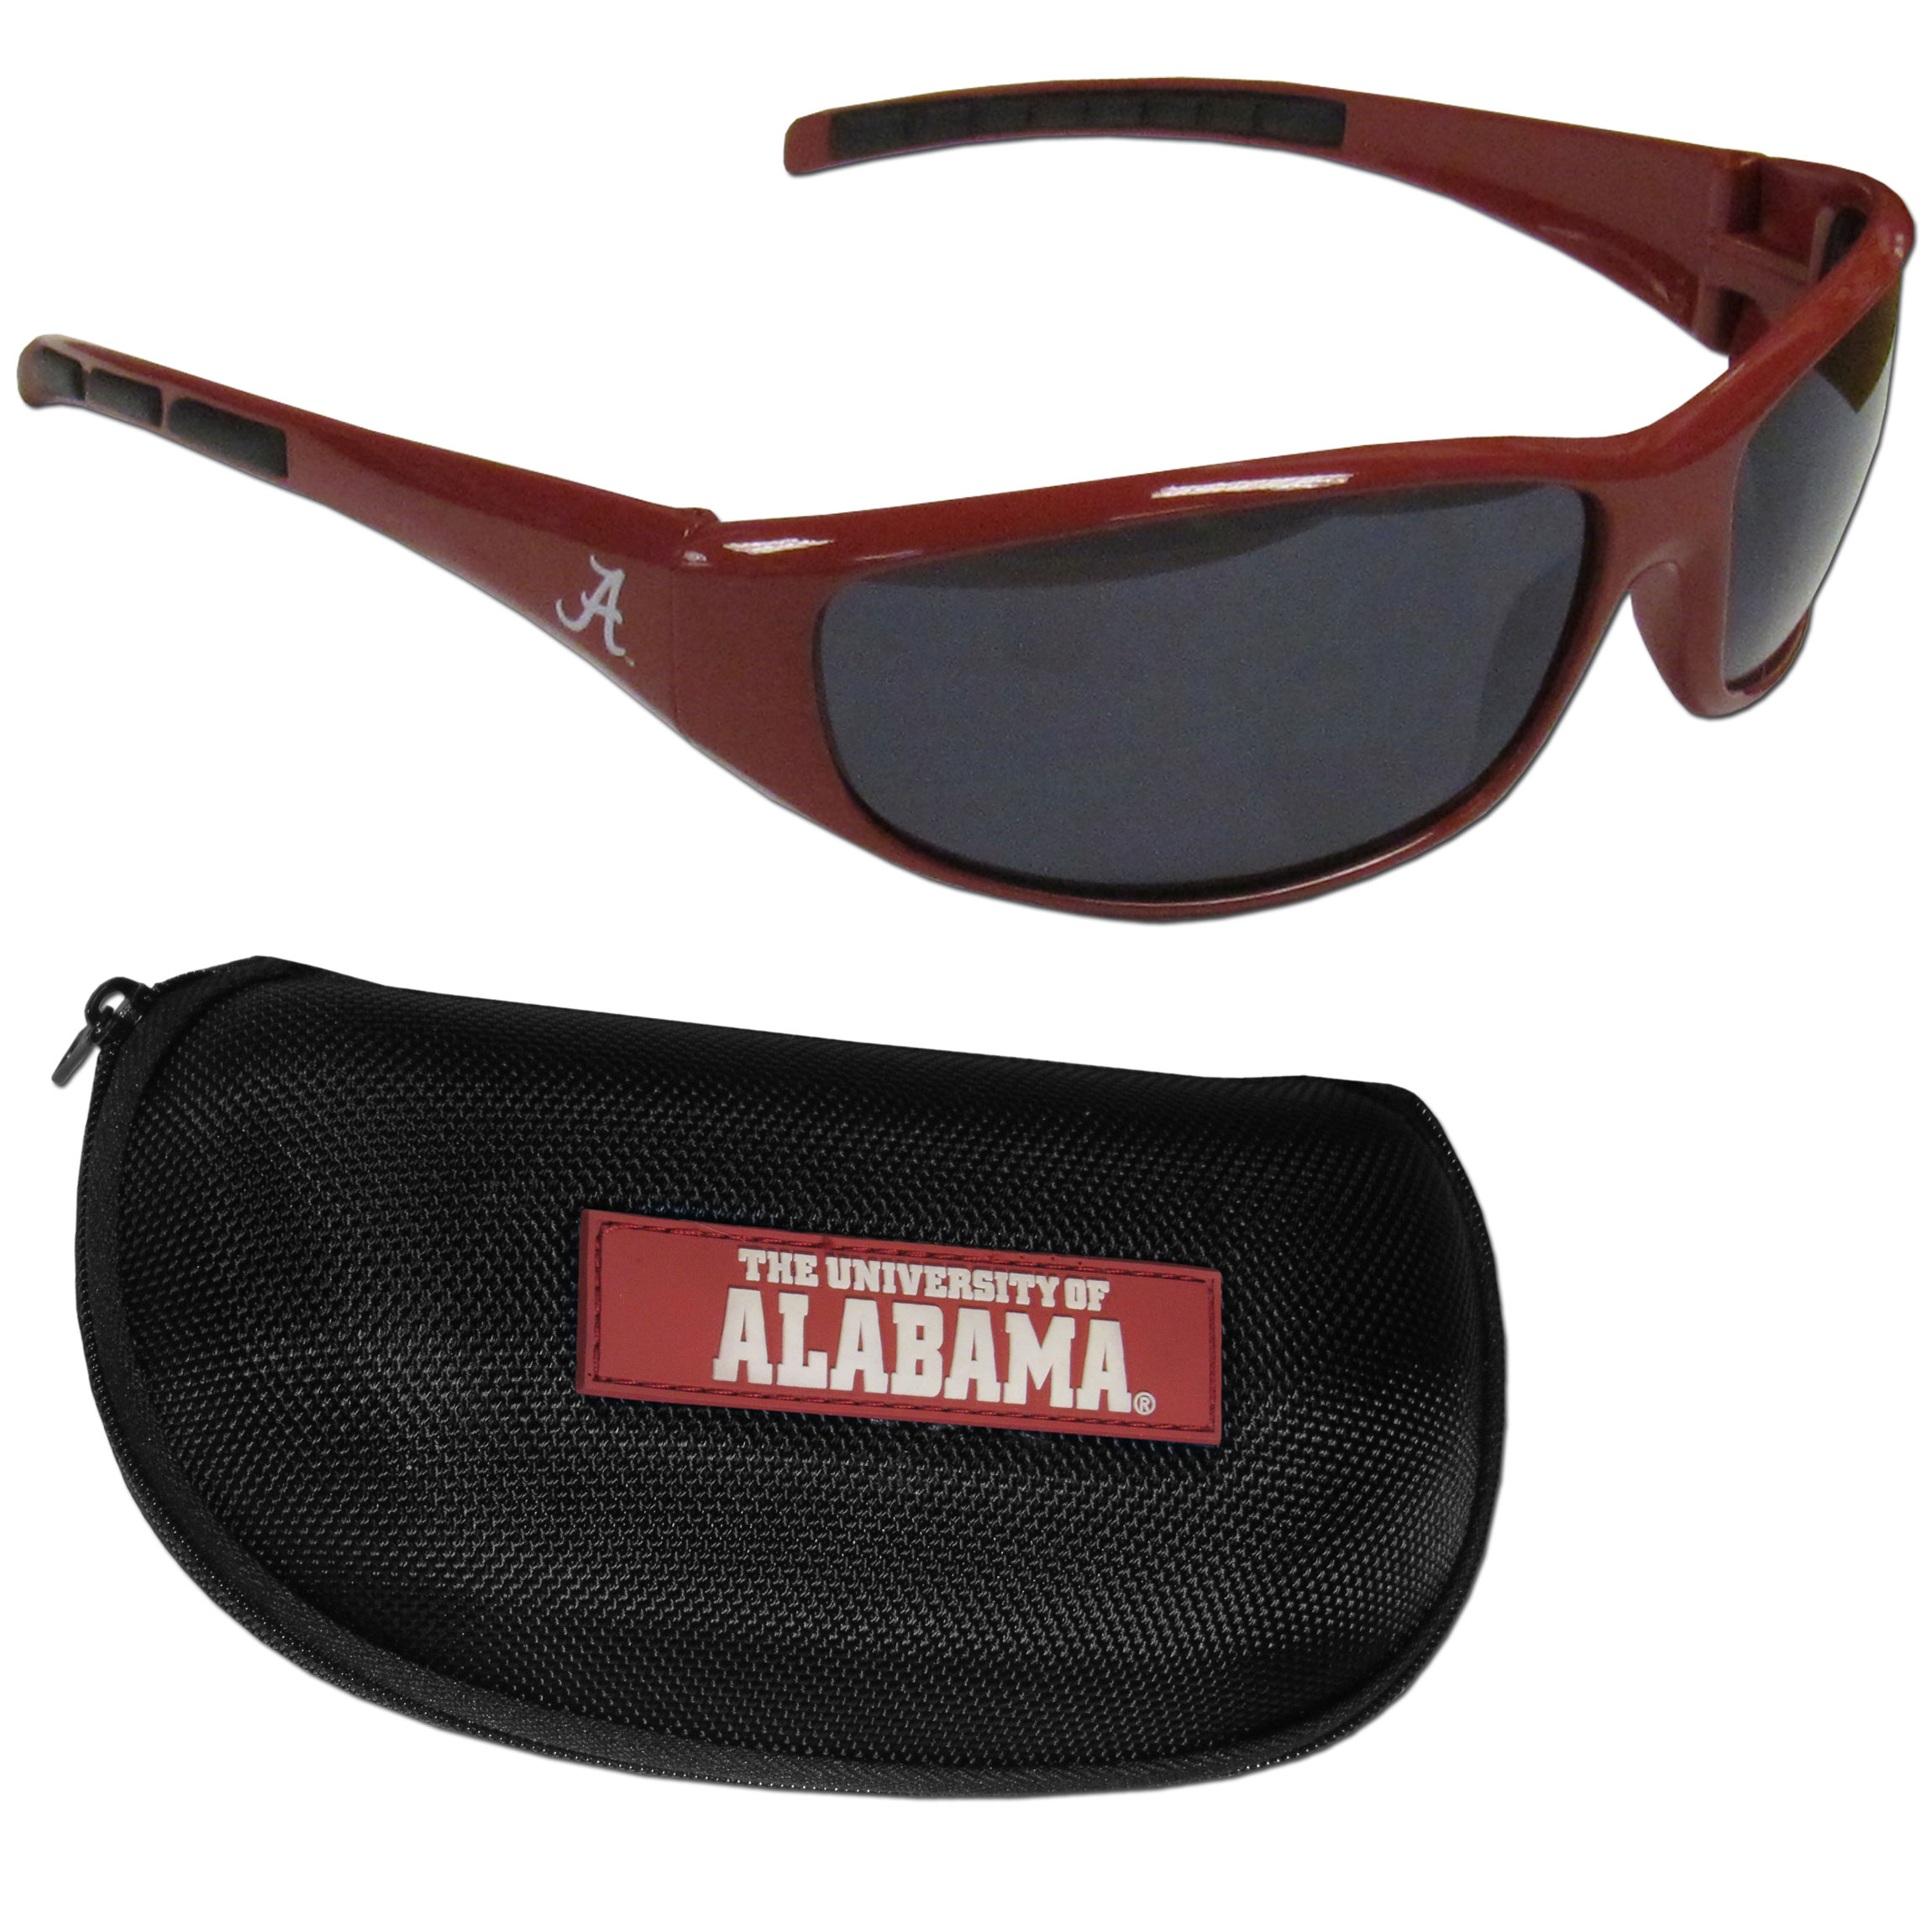 Alabama Crimson Tide Wrap Sunglass and Case Set - This great set includes a high quality pair of Alabama Crimson Tide wrap sunglasses and hard carrying case.